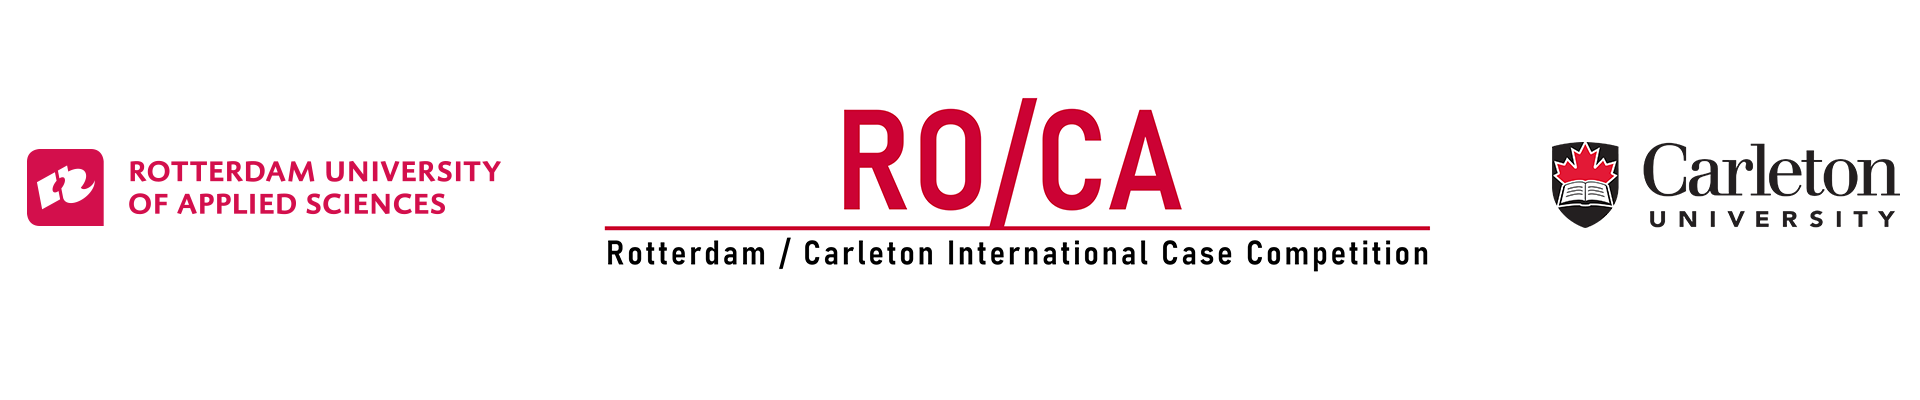 2. ROCA 2020 EVENTS  ROTTERDAM – CARLETON INTERNATIONAL CASE COMPETITION